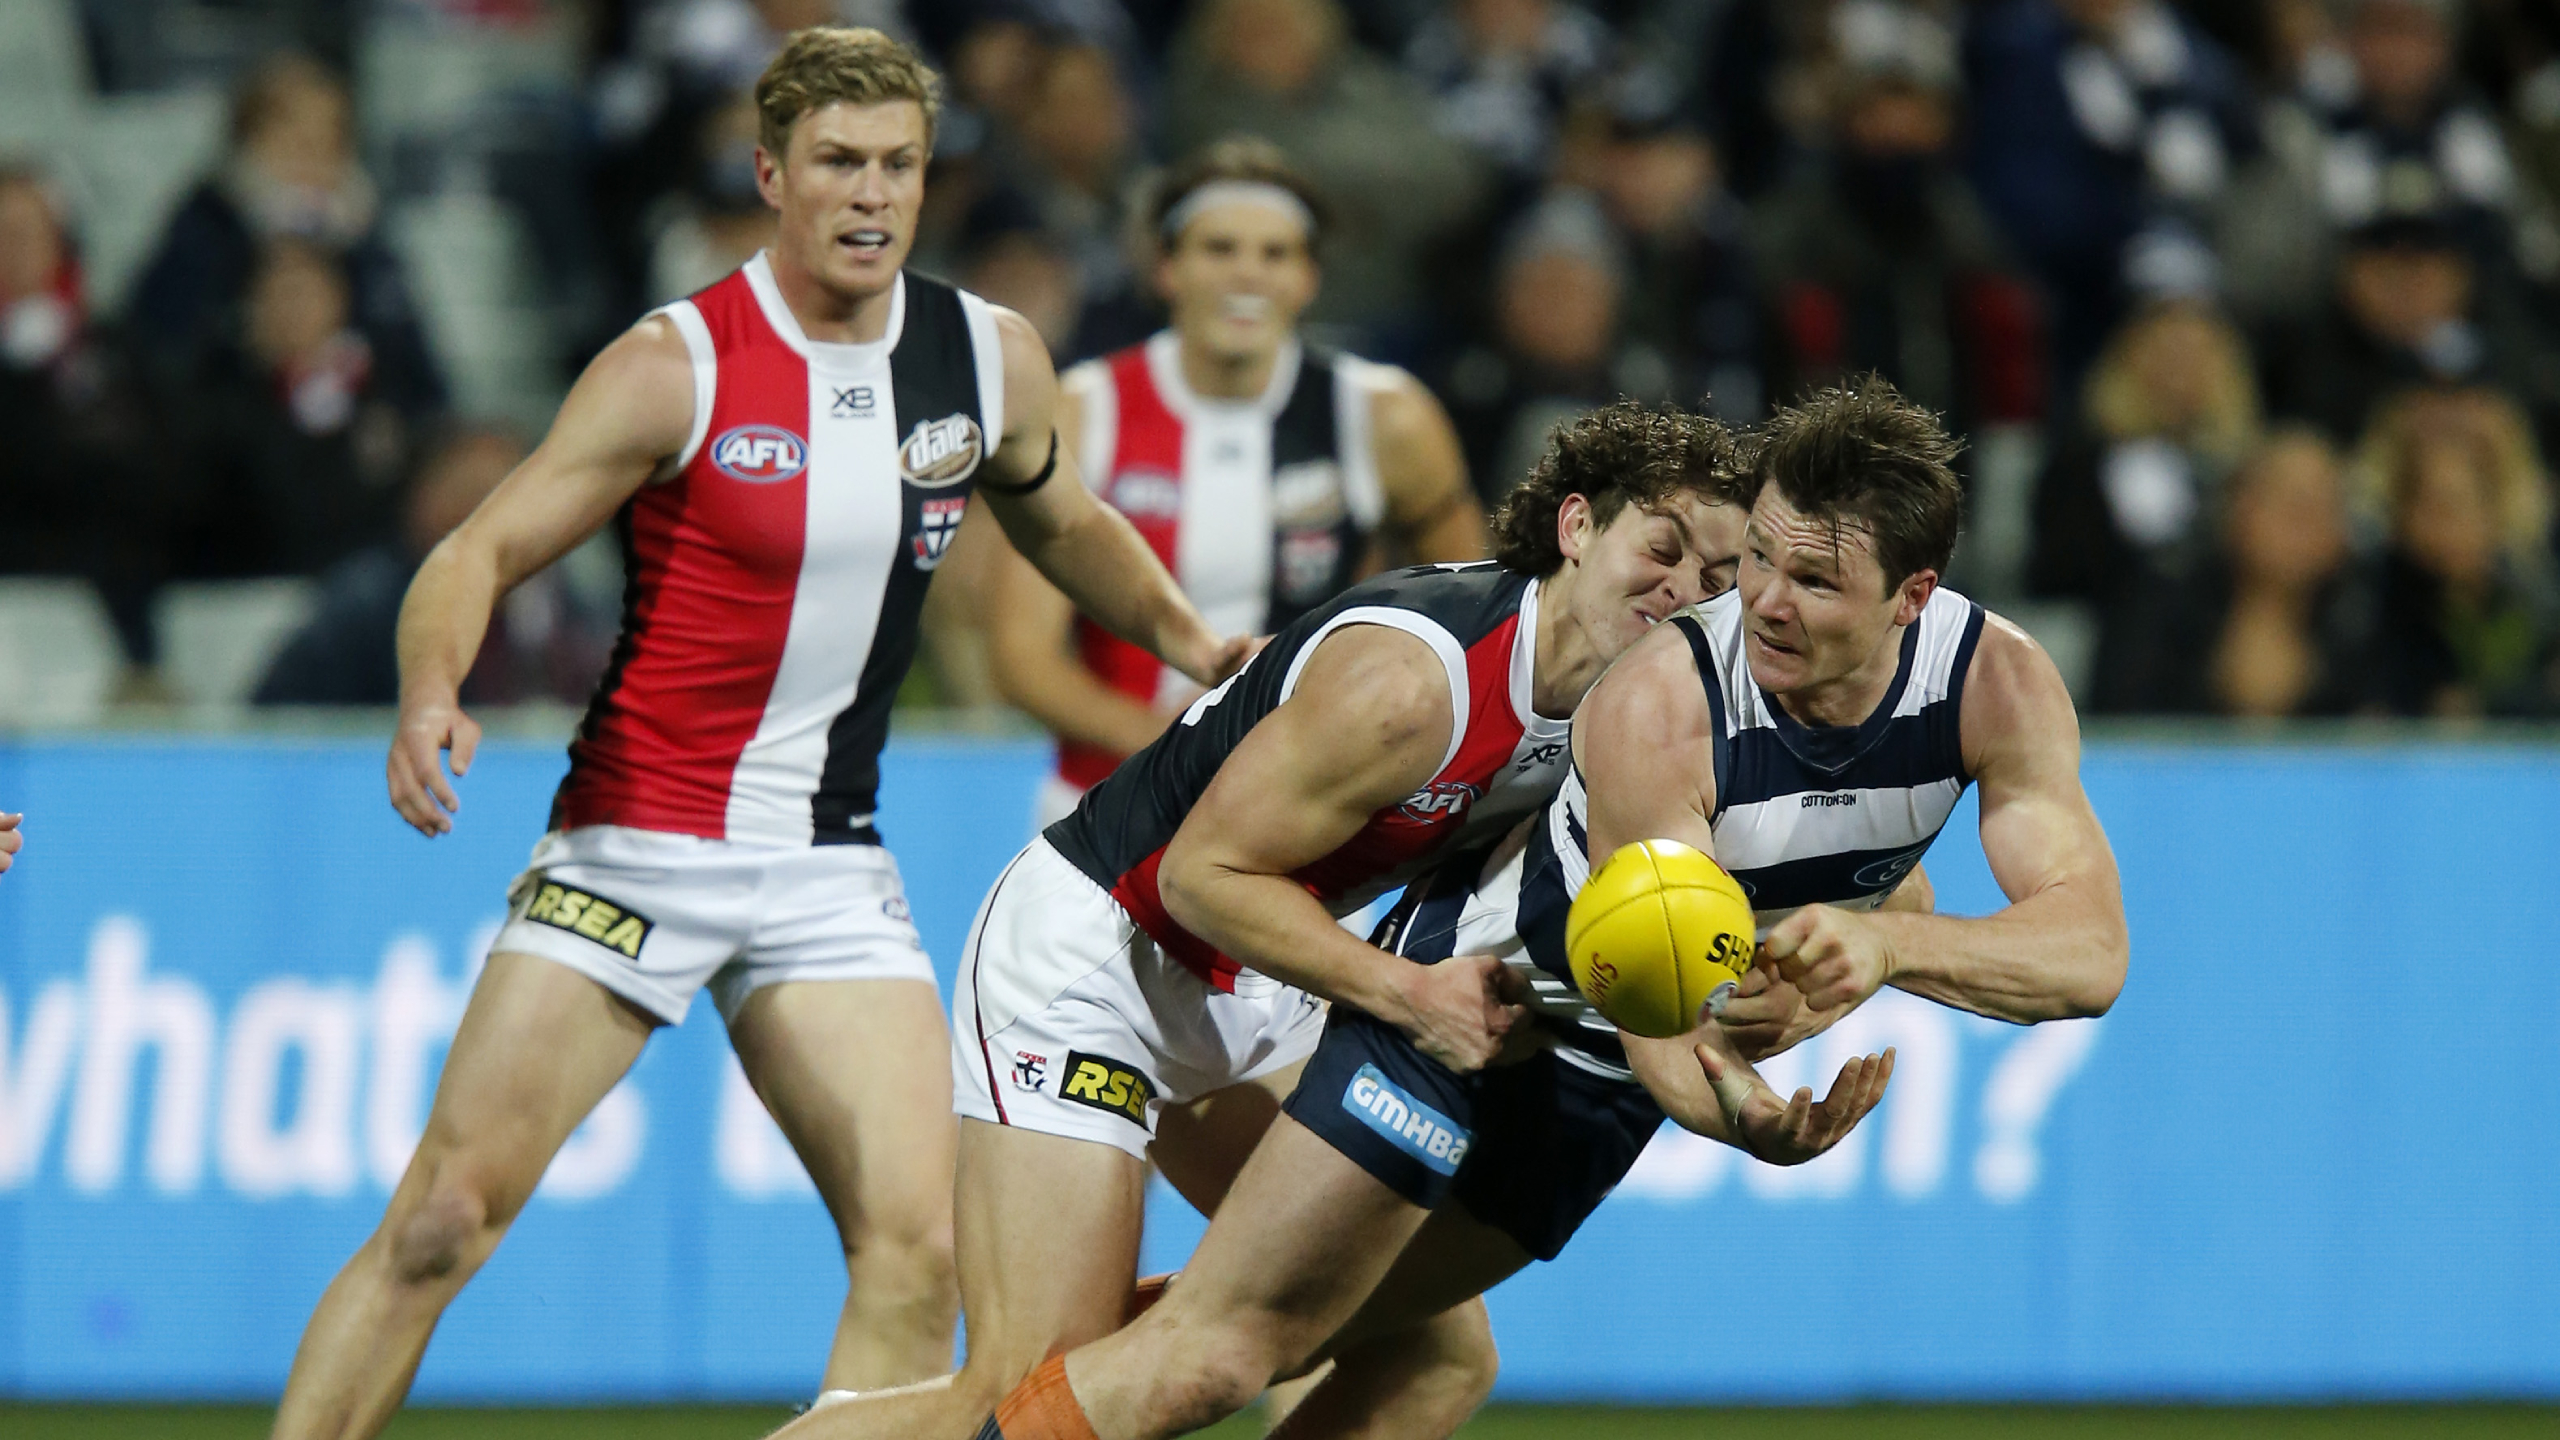 The AFL wants to remove tackling as a 'feature of the game'